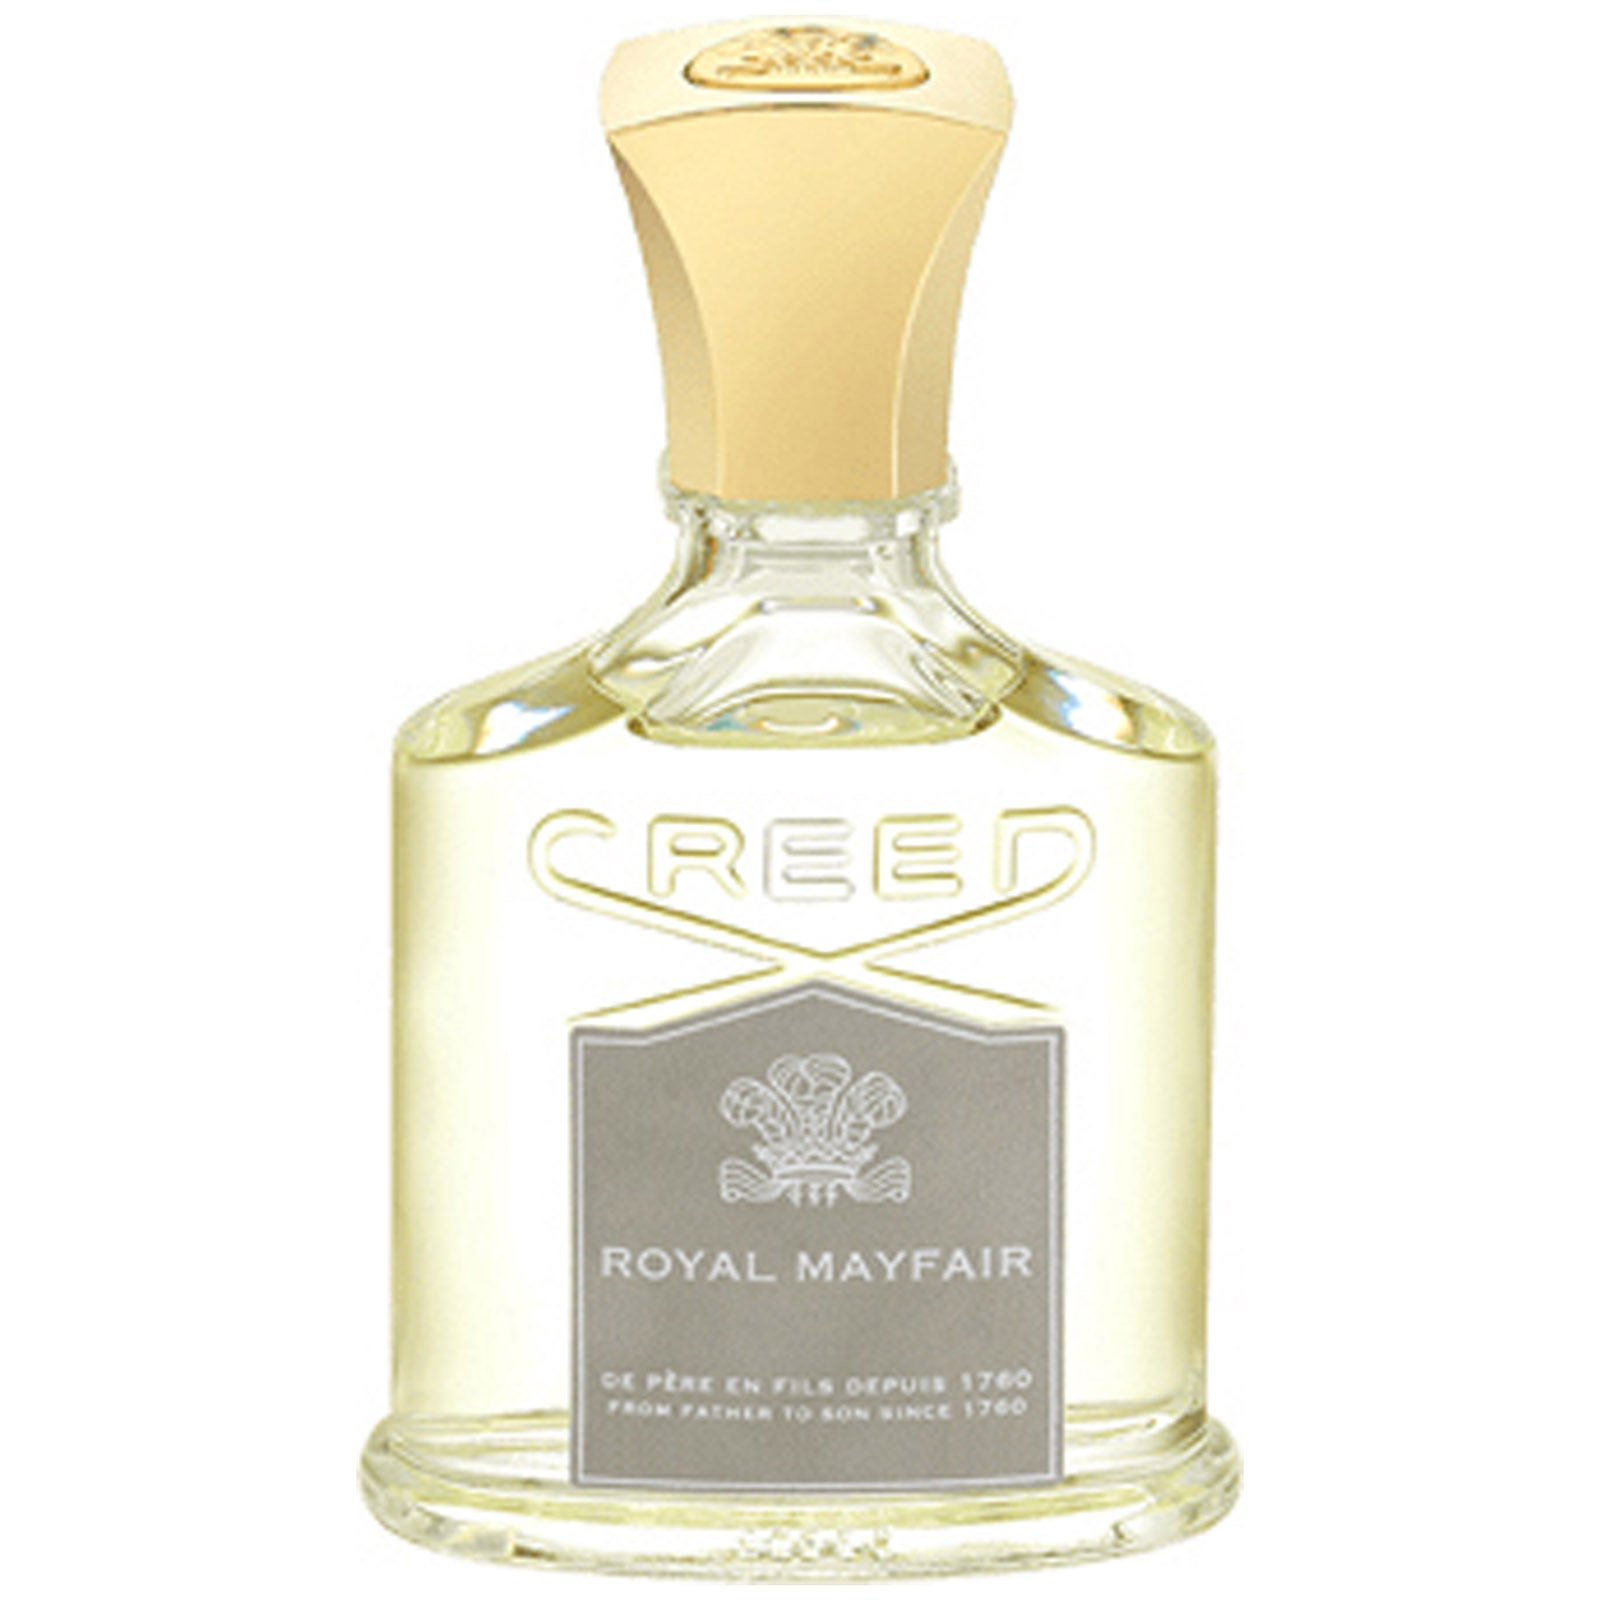 Creed Royal Mayfair Perfume Eau De Parfum 50 ml In White